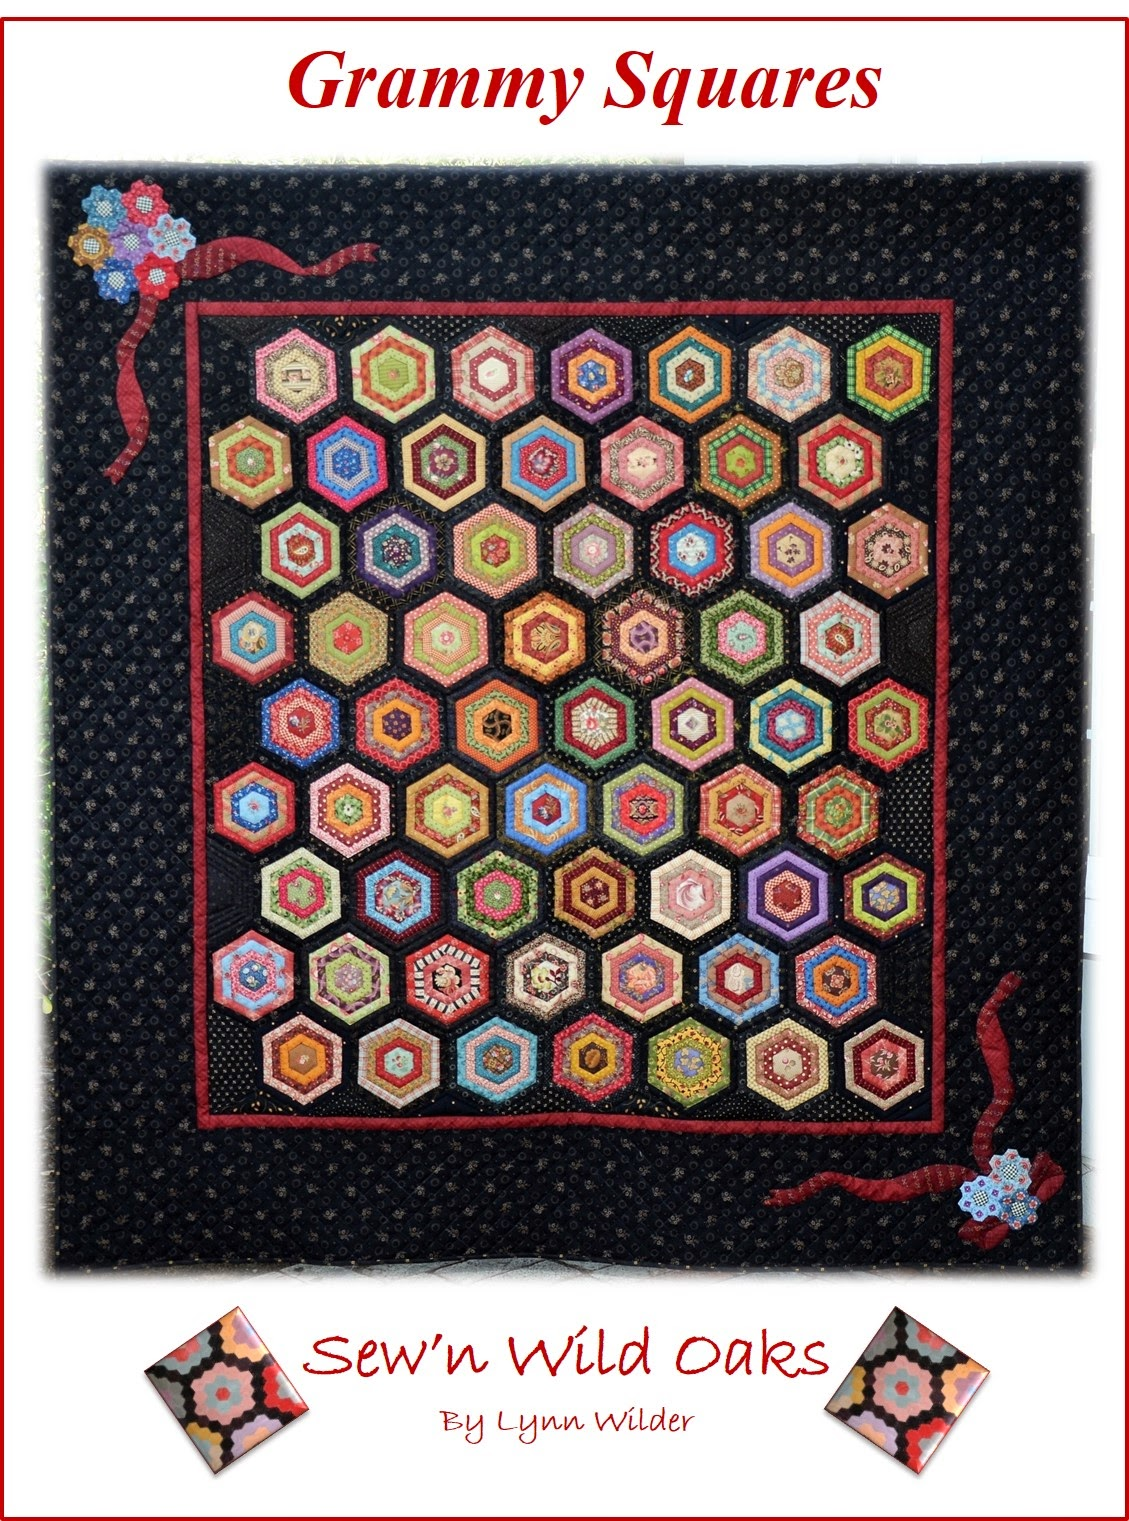 http://www.inbetweenstitches.com/shop/Patterns/p/Grammy-Squares-Pattern-x6373818.htm